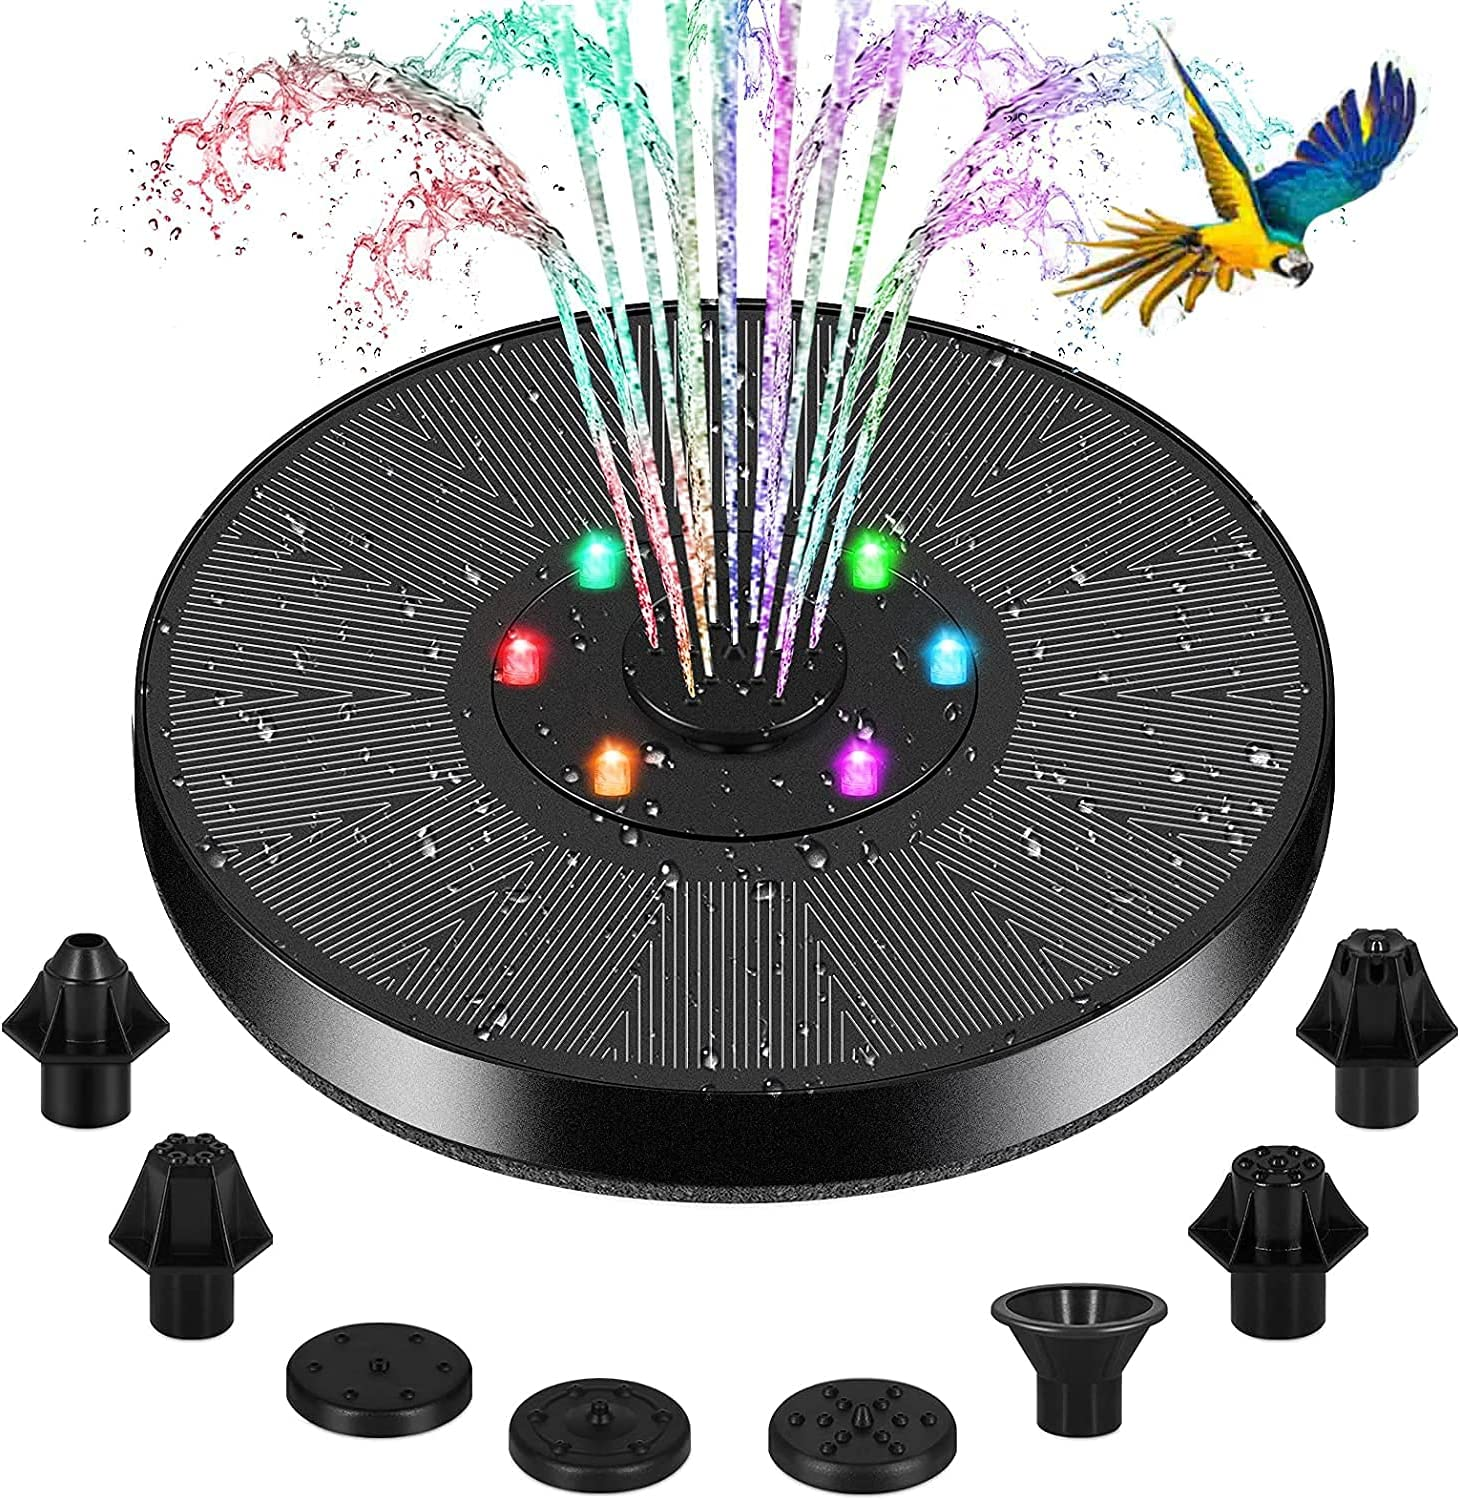 Reesibi Solar Fountain Pump for Bird Bath,2021 Solar Water Fountain Pump with LED Lights,Outdoor Fountain Pump,Upgrade 3W,7 Nozzles,4 Anti-Collision Bars, for Fish Tank,Pond,and Patio Garden Decor